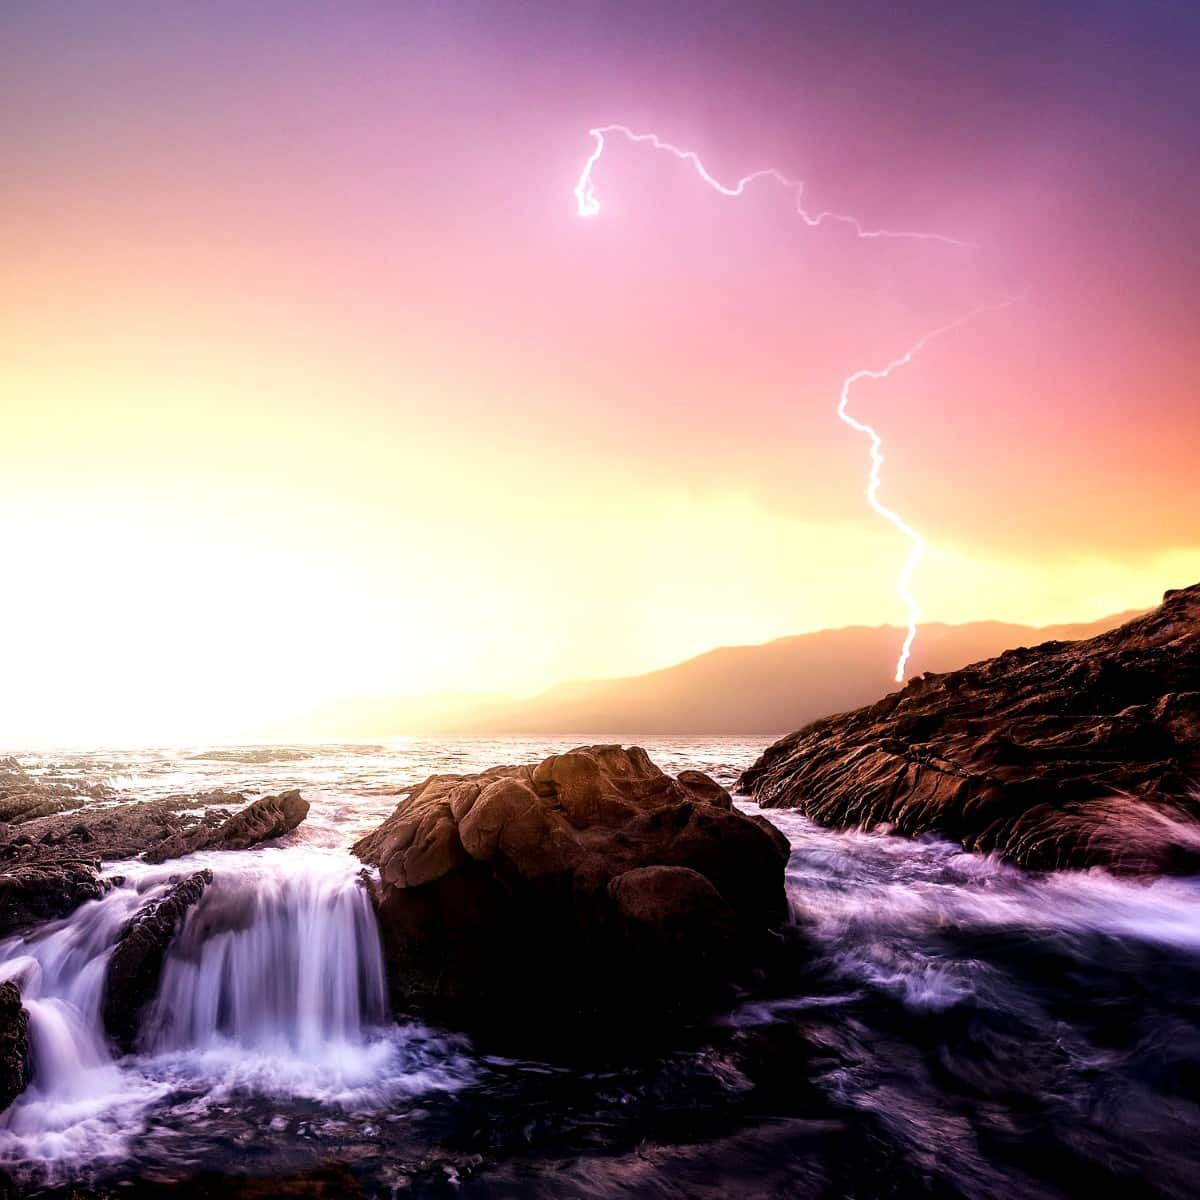 Prayer – be faithful to God, even during the storms of this life